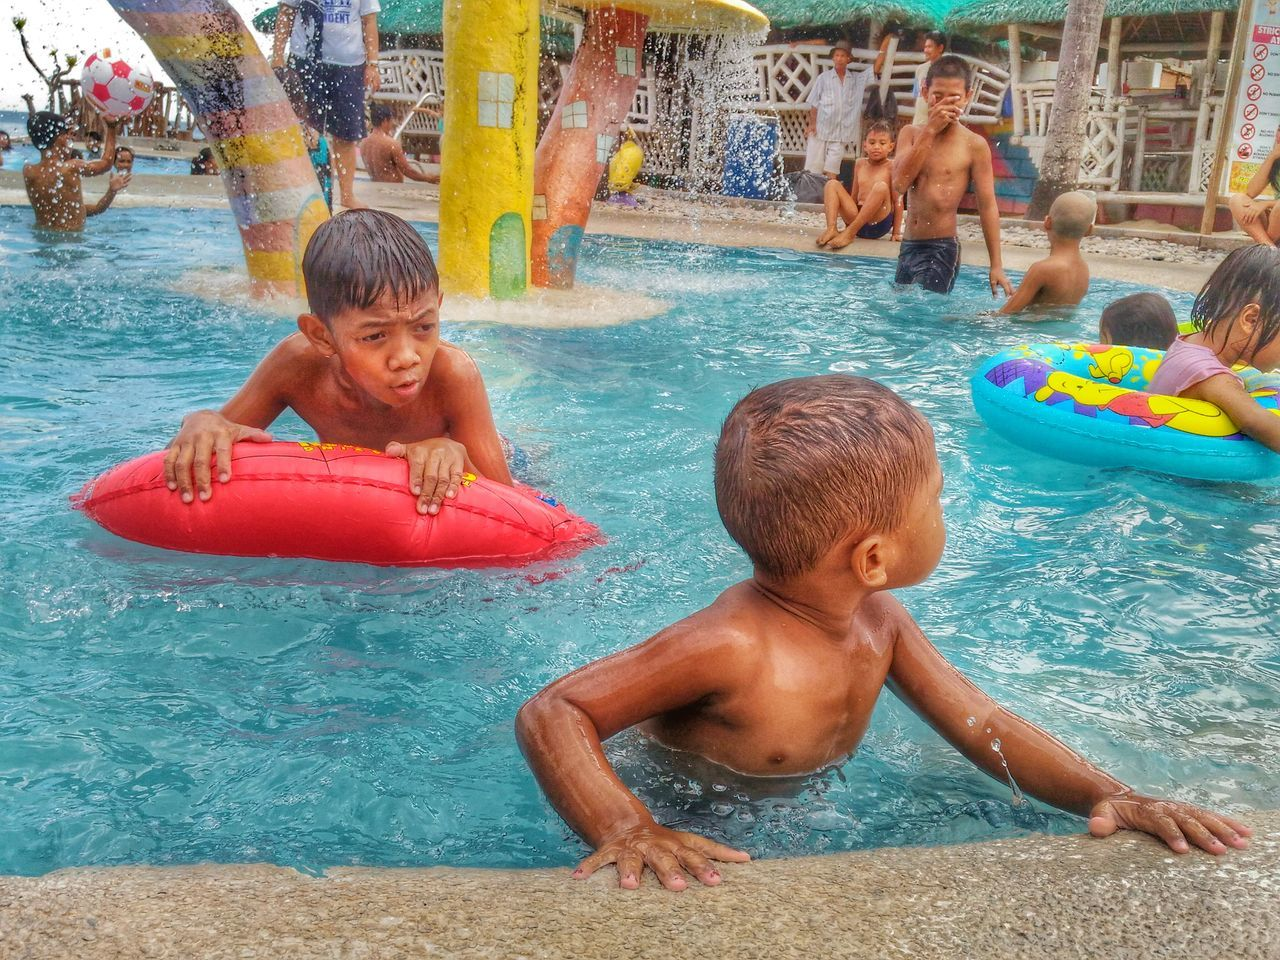 The Essence Of Summer Pool Party EyeEm Best Shots Mobile Photography Asus Zenfone Eyeem Philippines Eyeem Photography Cosmopolitan EyeEm Best Edits Summer Vibes Summer Escape Children Photography Eyeem Bacolod